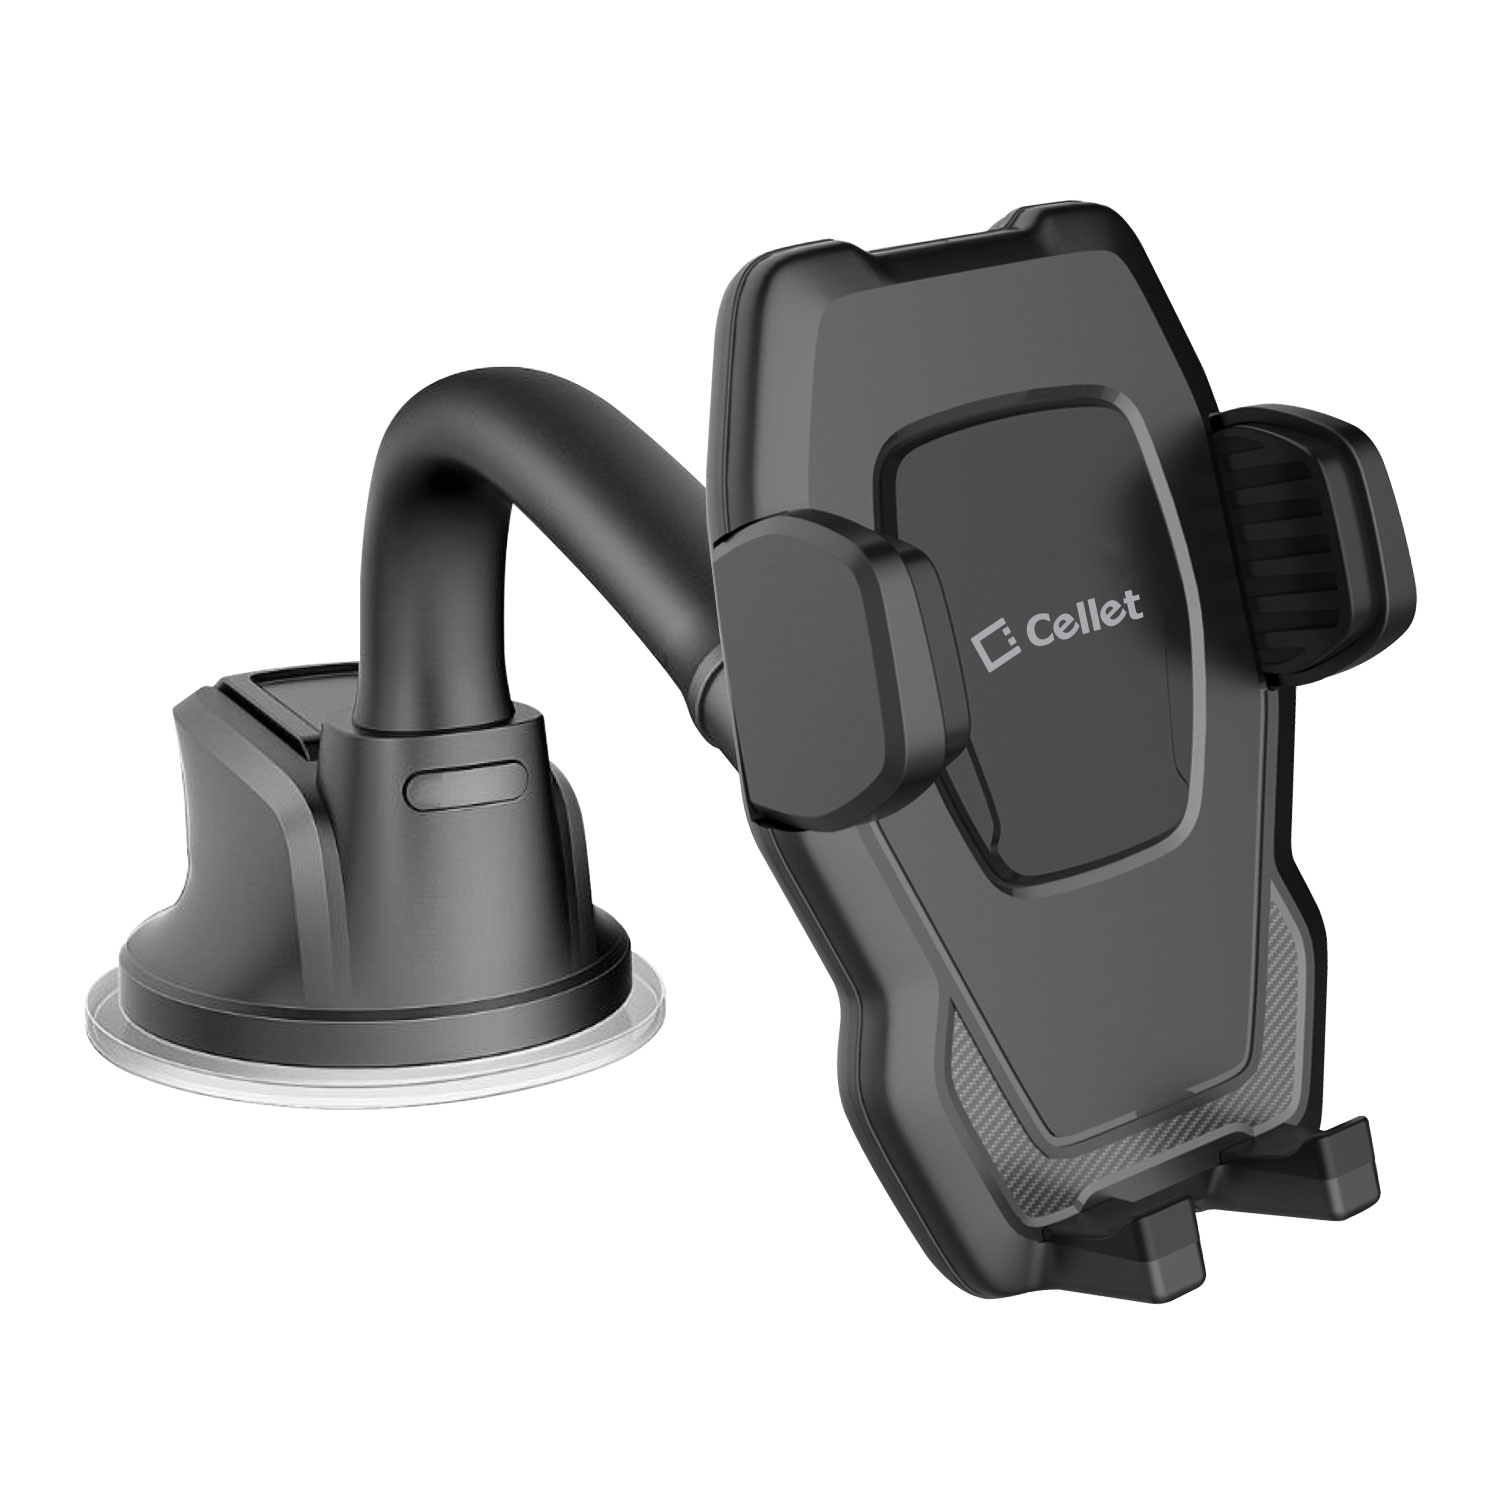 LG Q6 Windshield Phone Holder Goose Neck Black